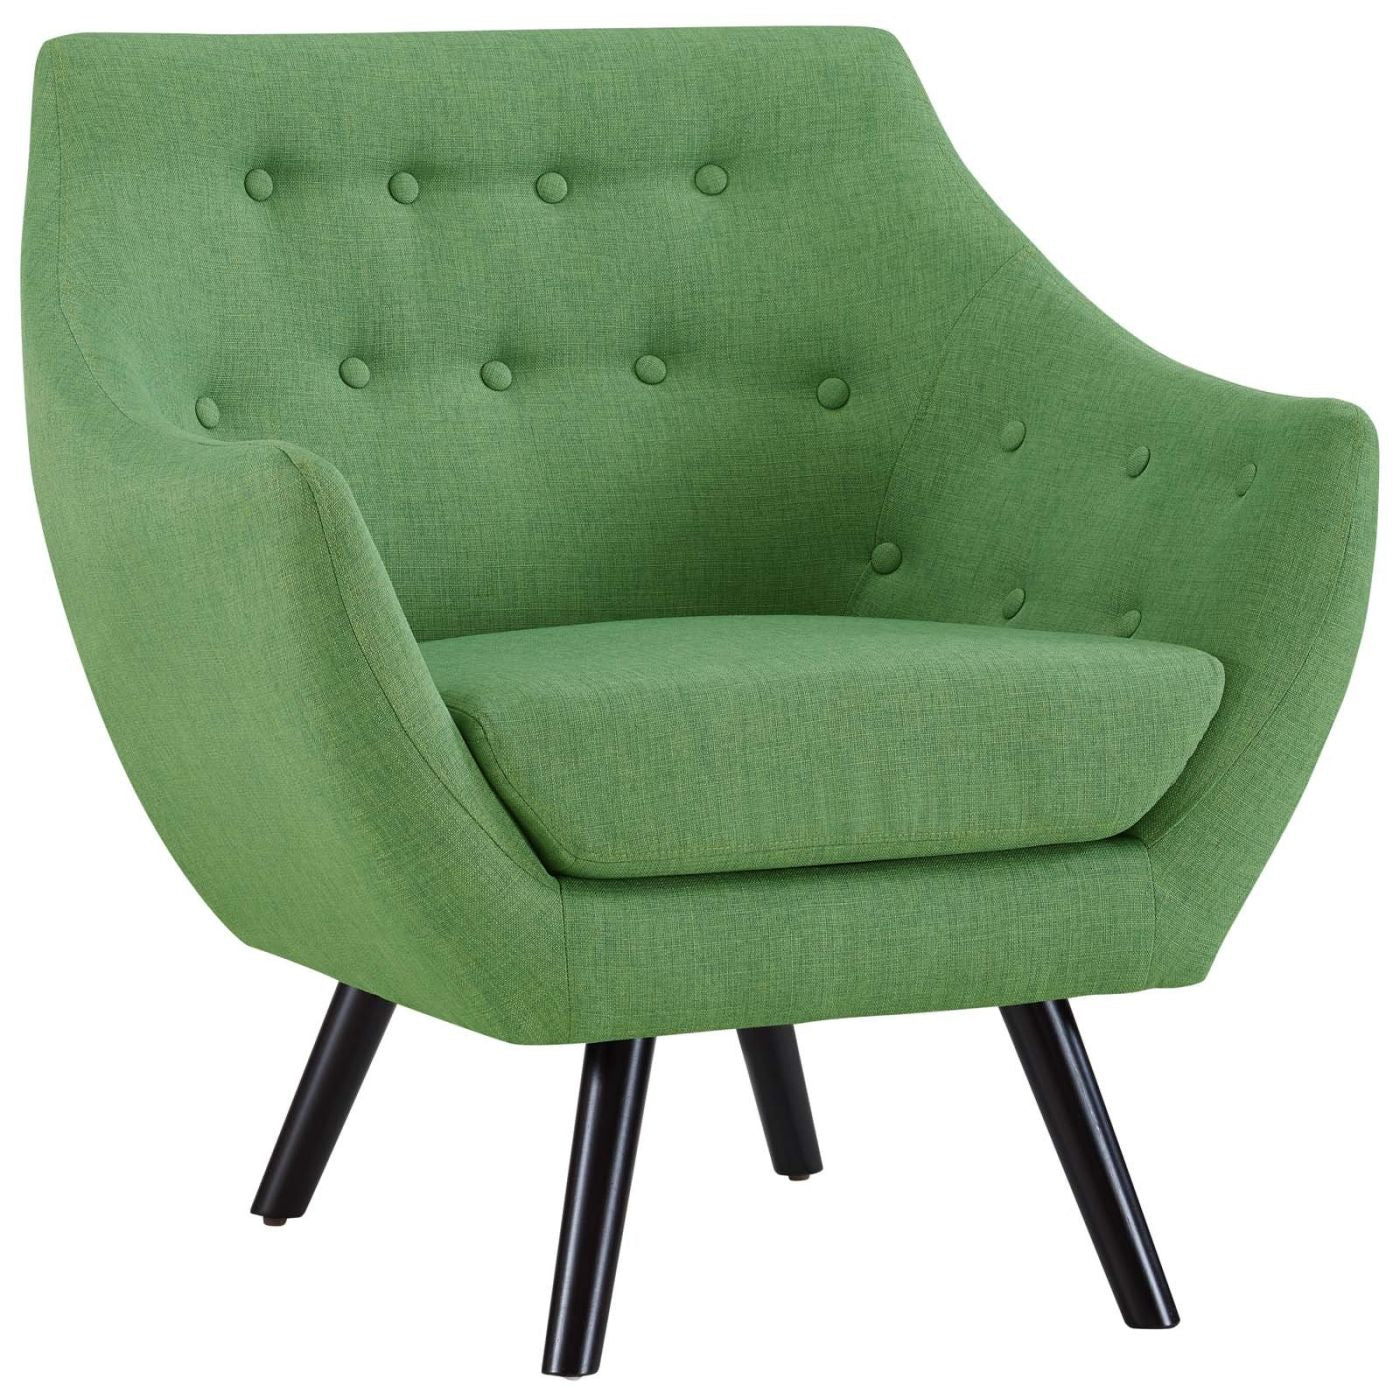 Allegory contemporary mid century fabric armchair green